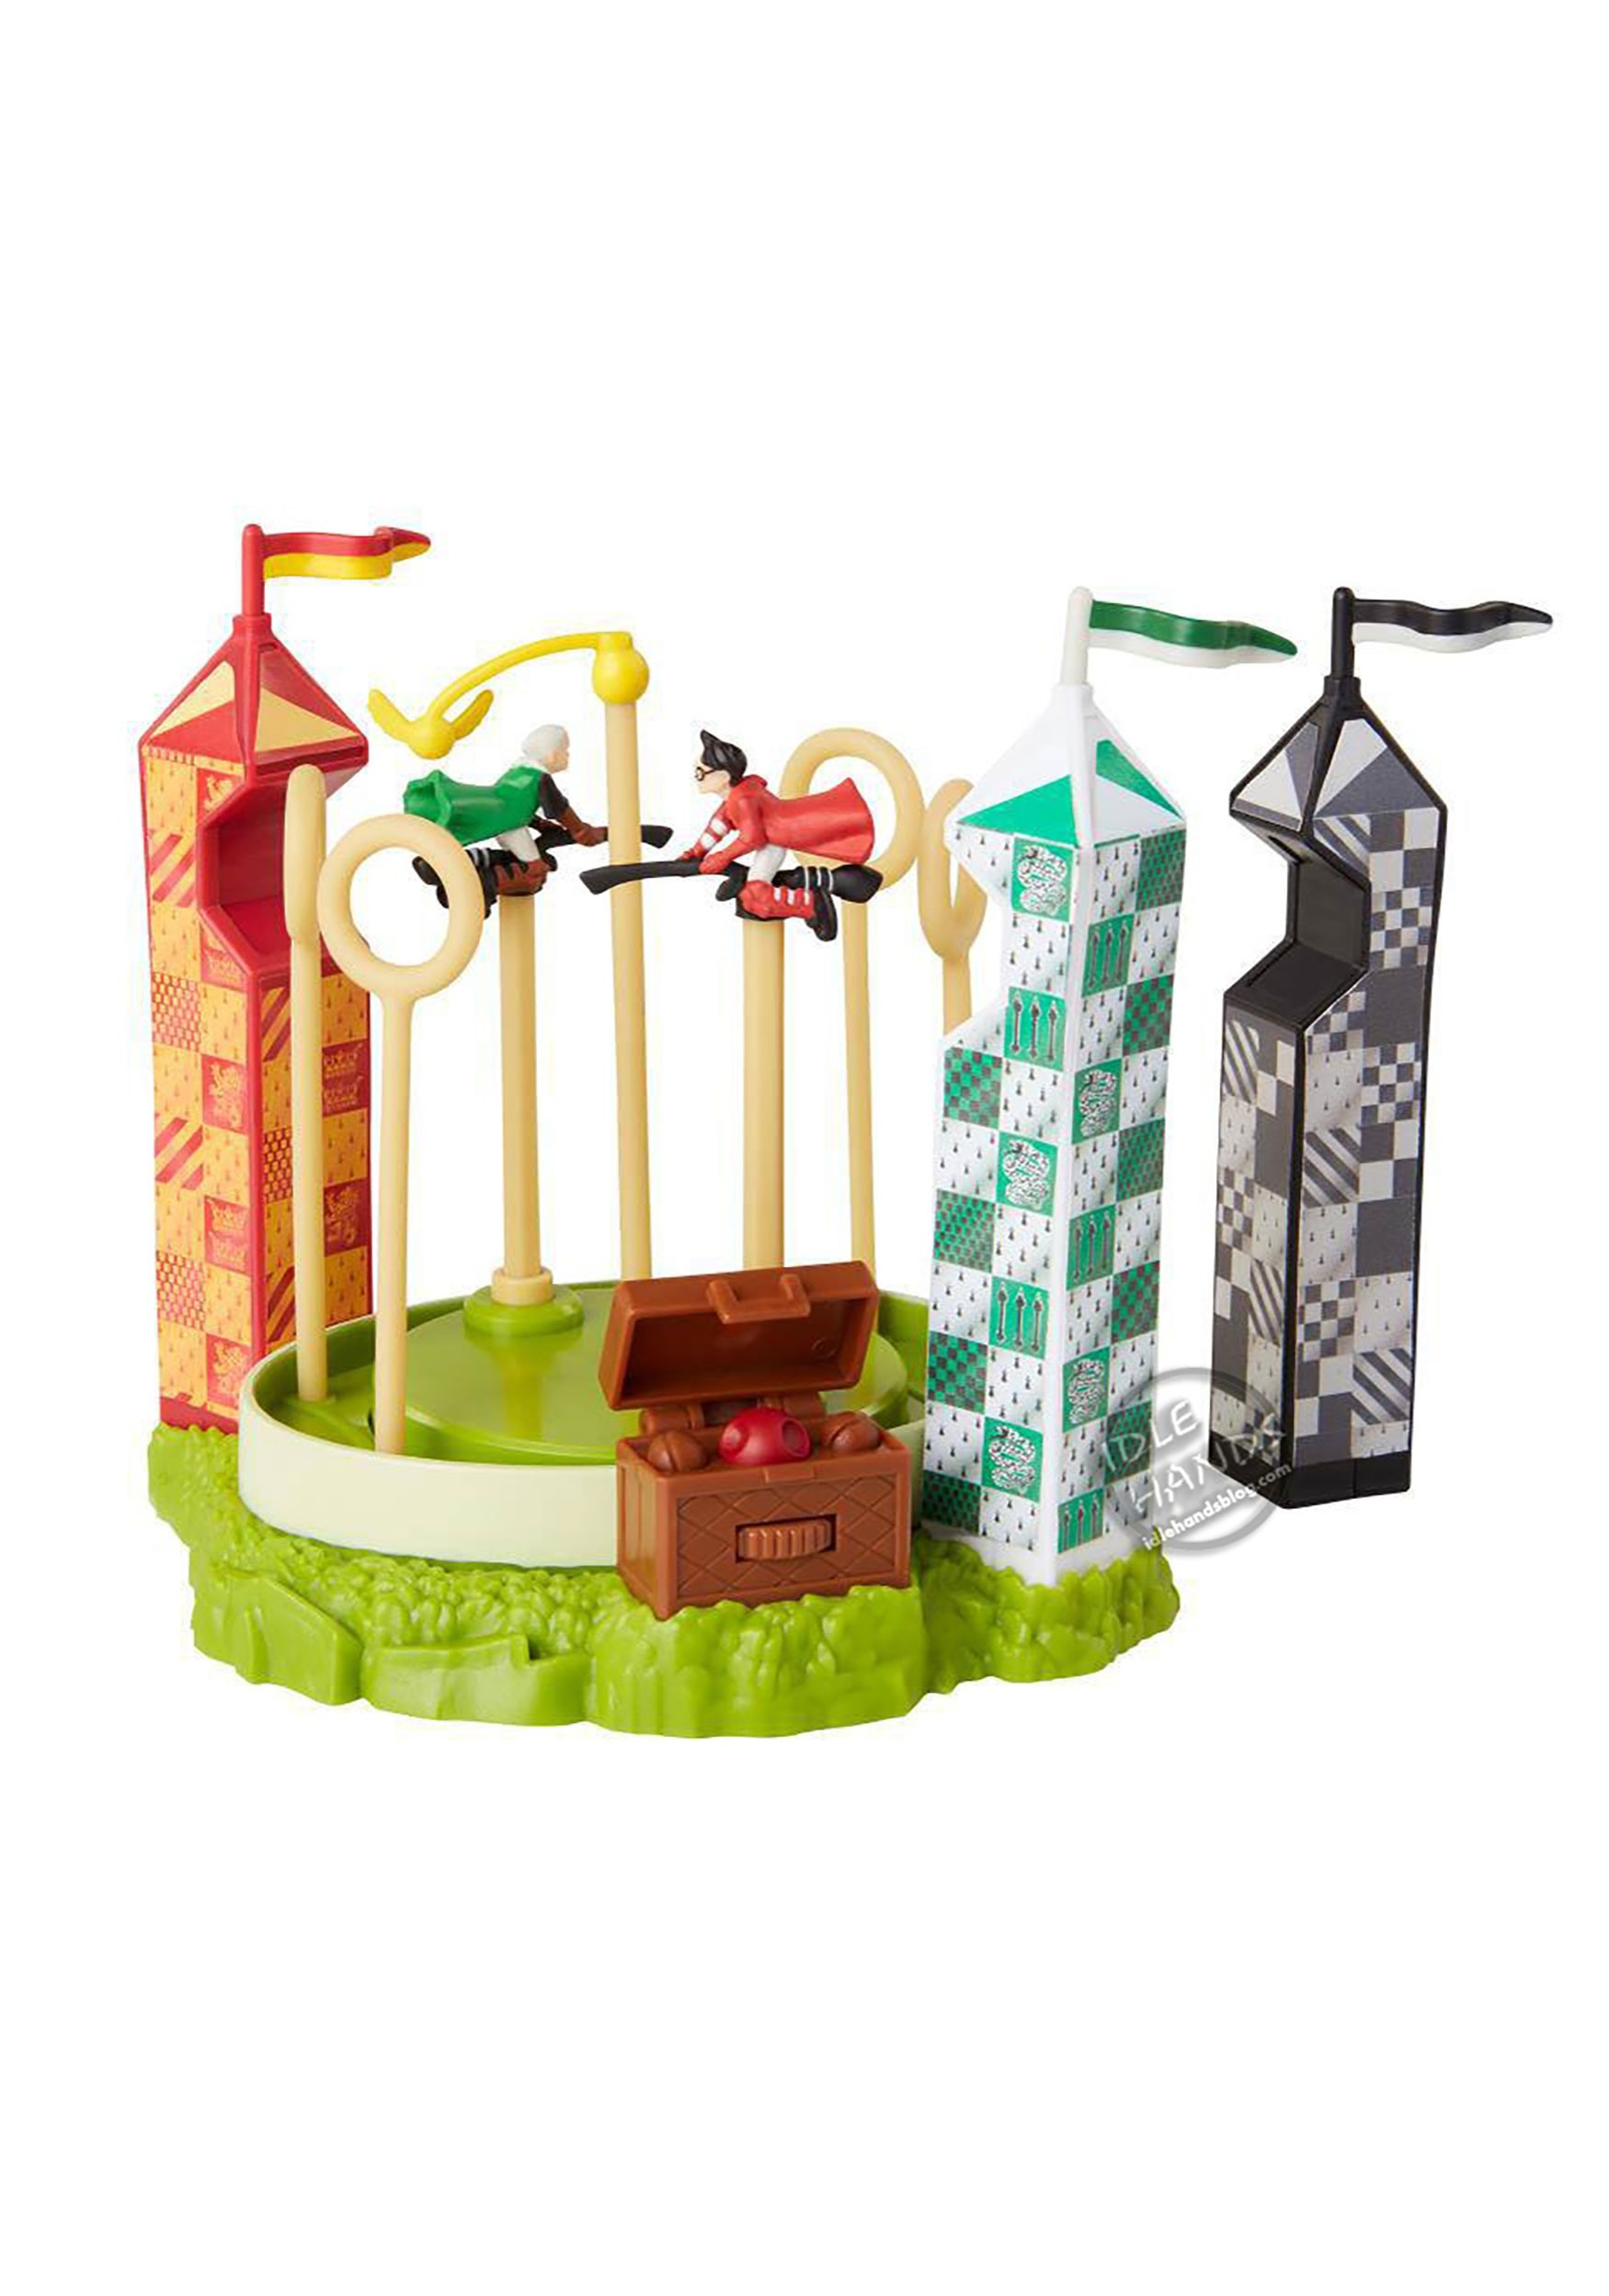 Gryffindor vs Slytherin Quidditch Arena Harry Potter Mini Playset